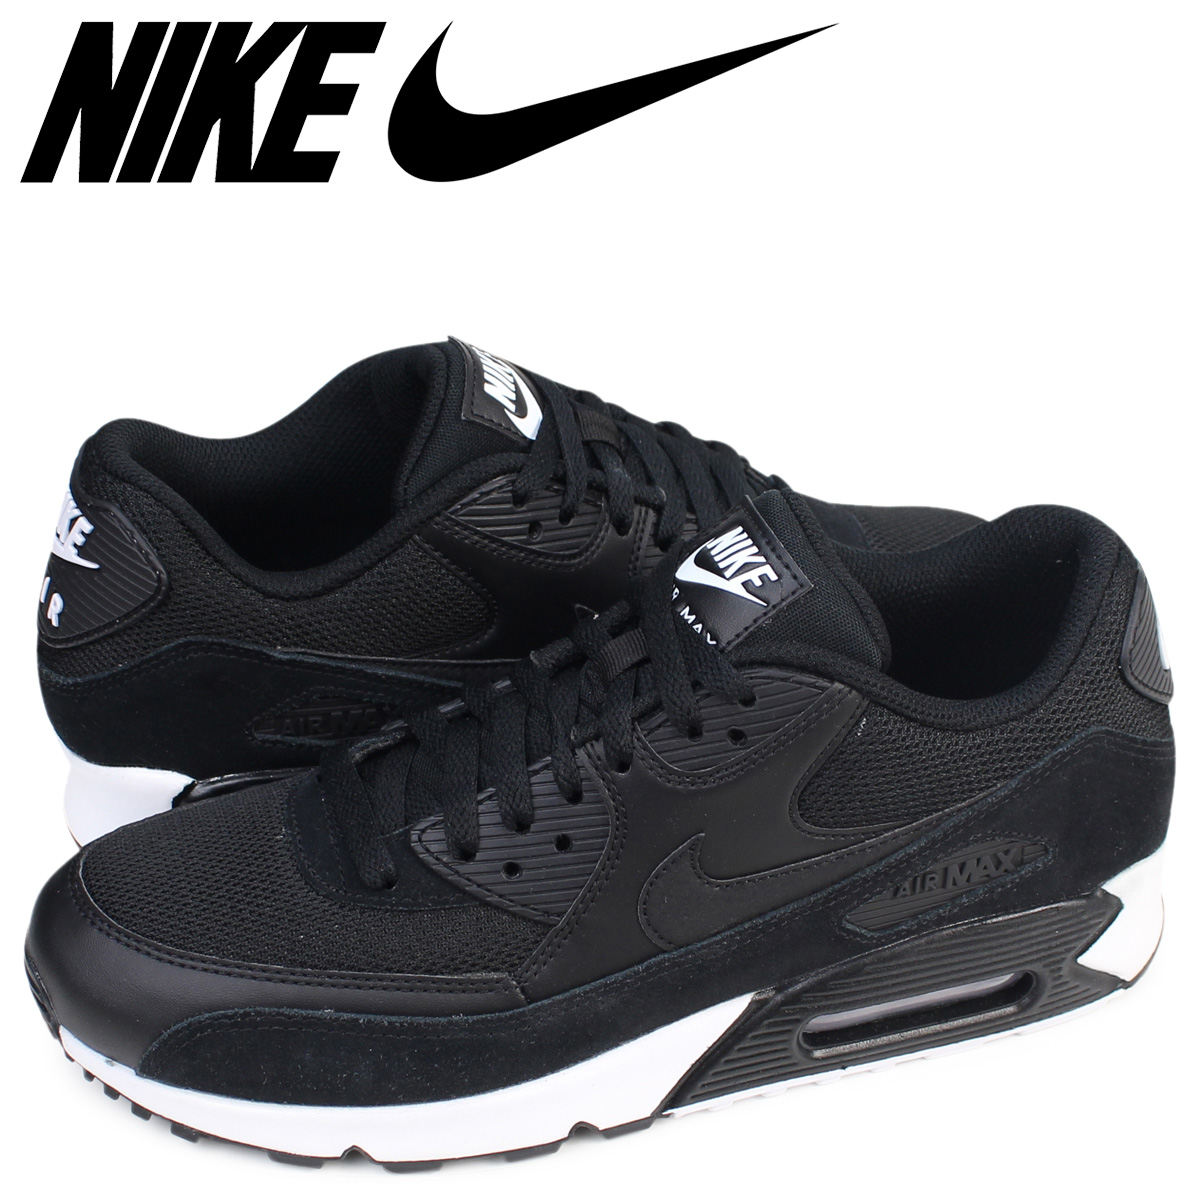 meet 53de0 2a7de Sugar Online Shop  Nike NIKE Air Max 90 men s sneakers AIR MAX 90 ESSENTIAL  537,384-077 shoes black  6 28 Shinnyu load    Rakuten Global Market